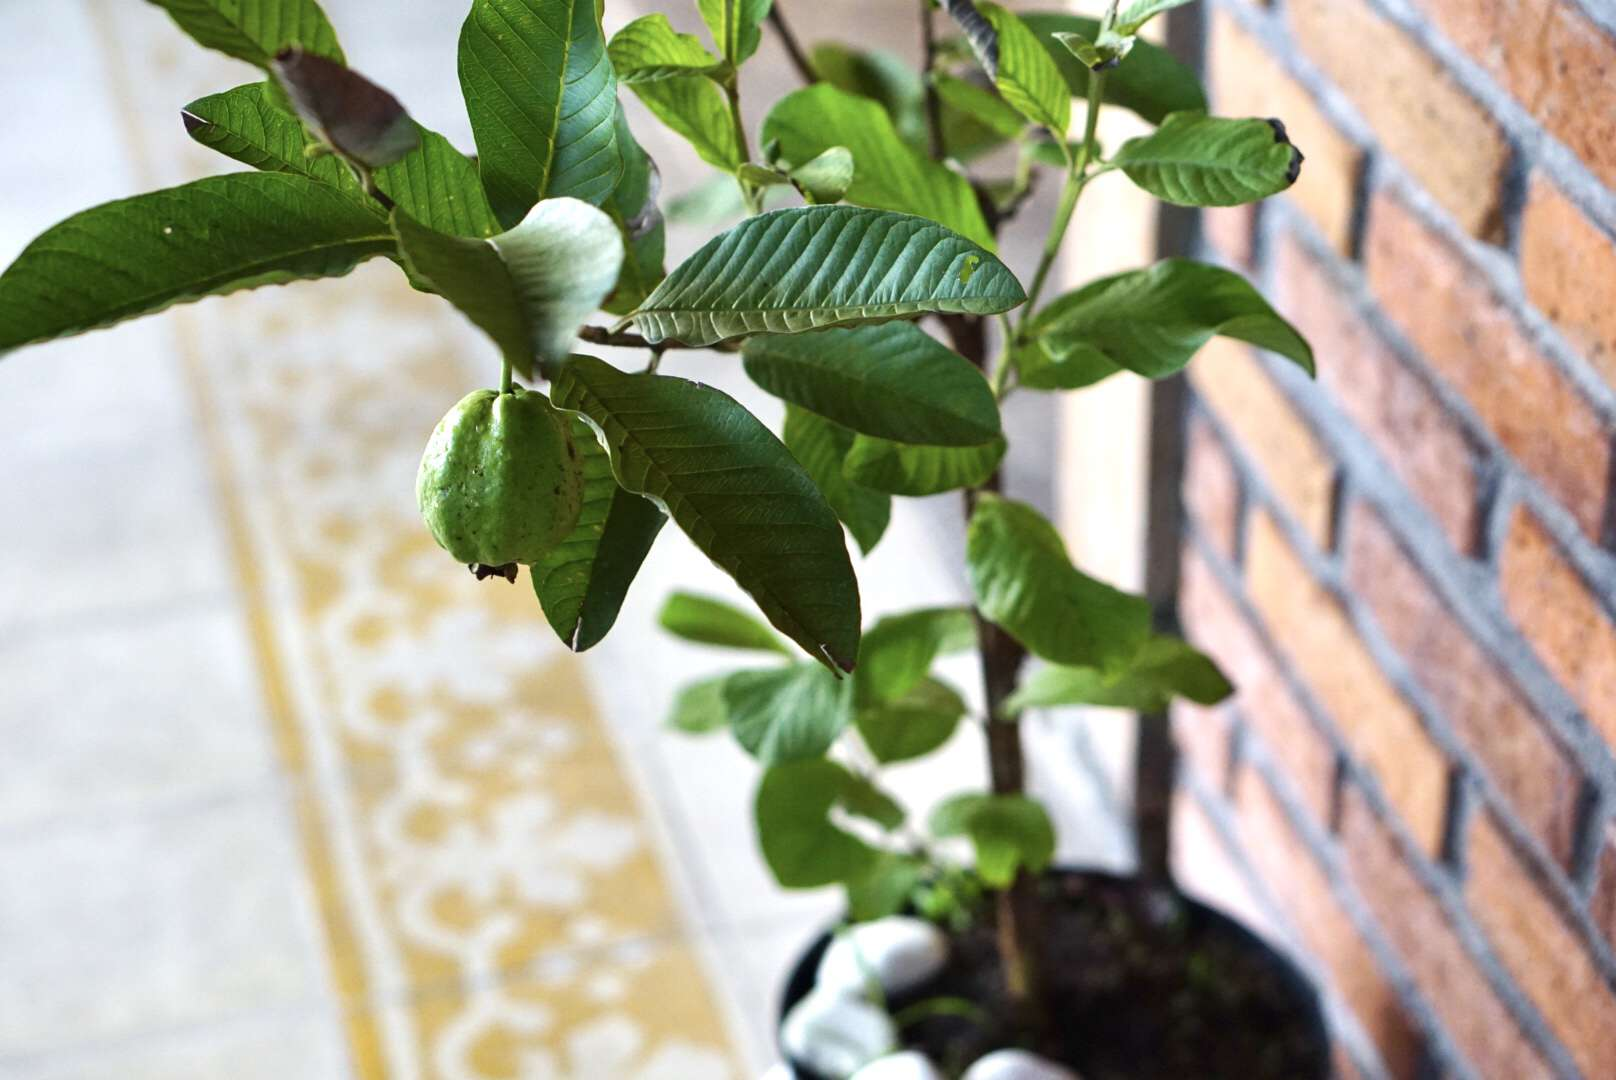 Guava fruit hanging on top of guava plant in pot